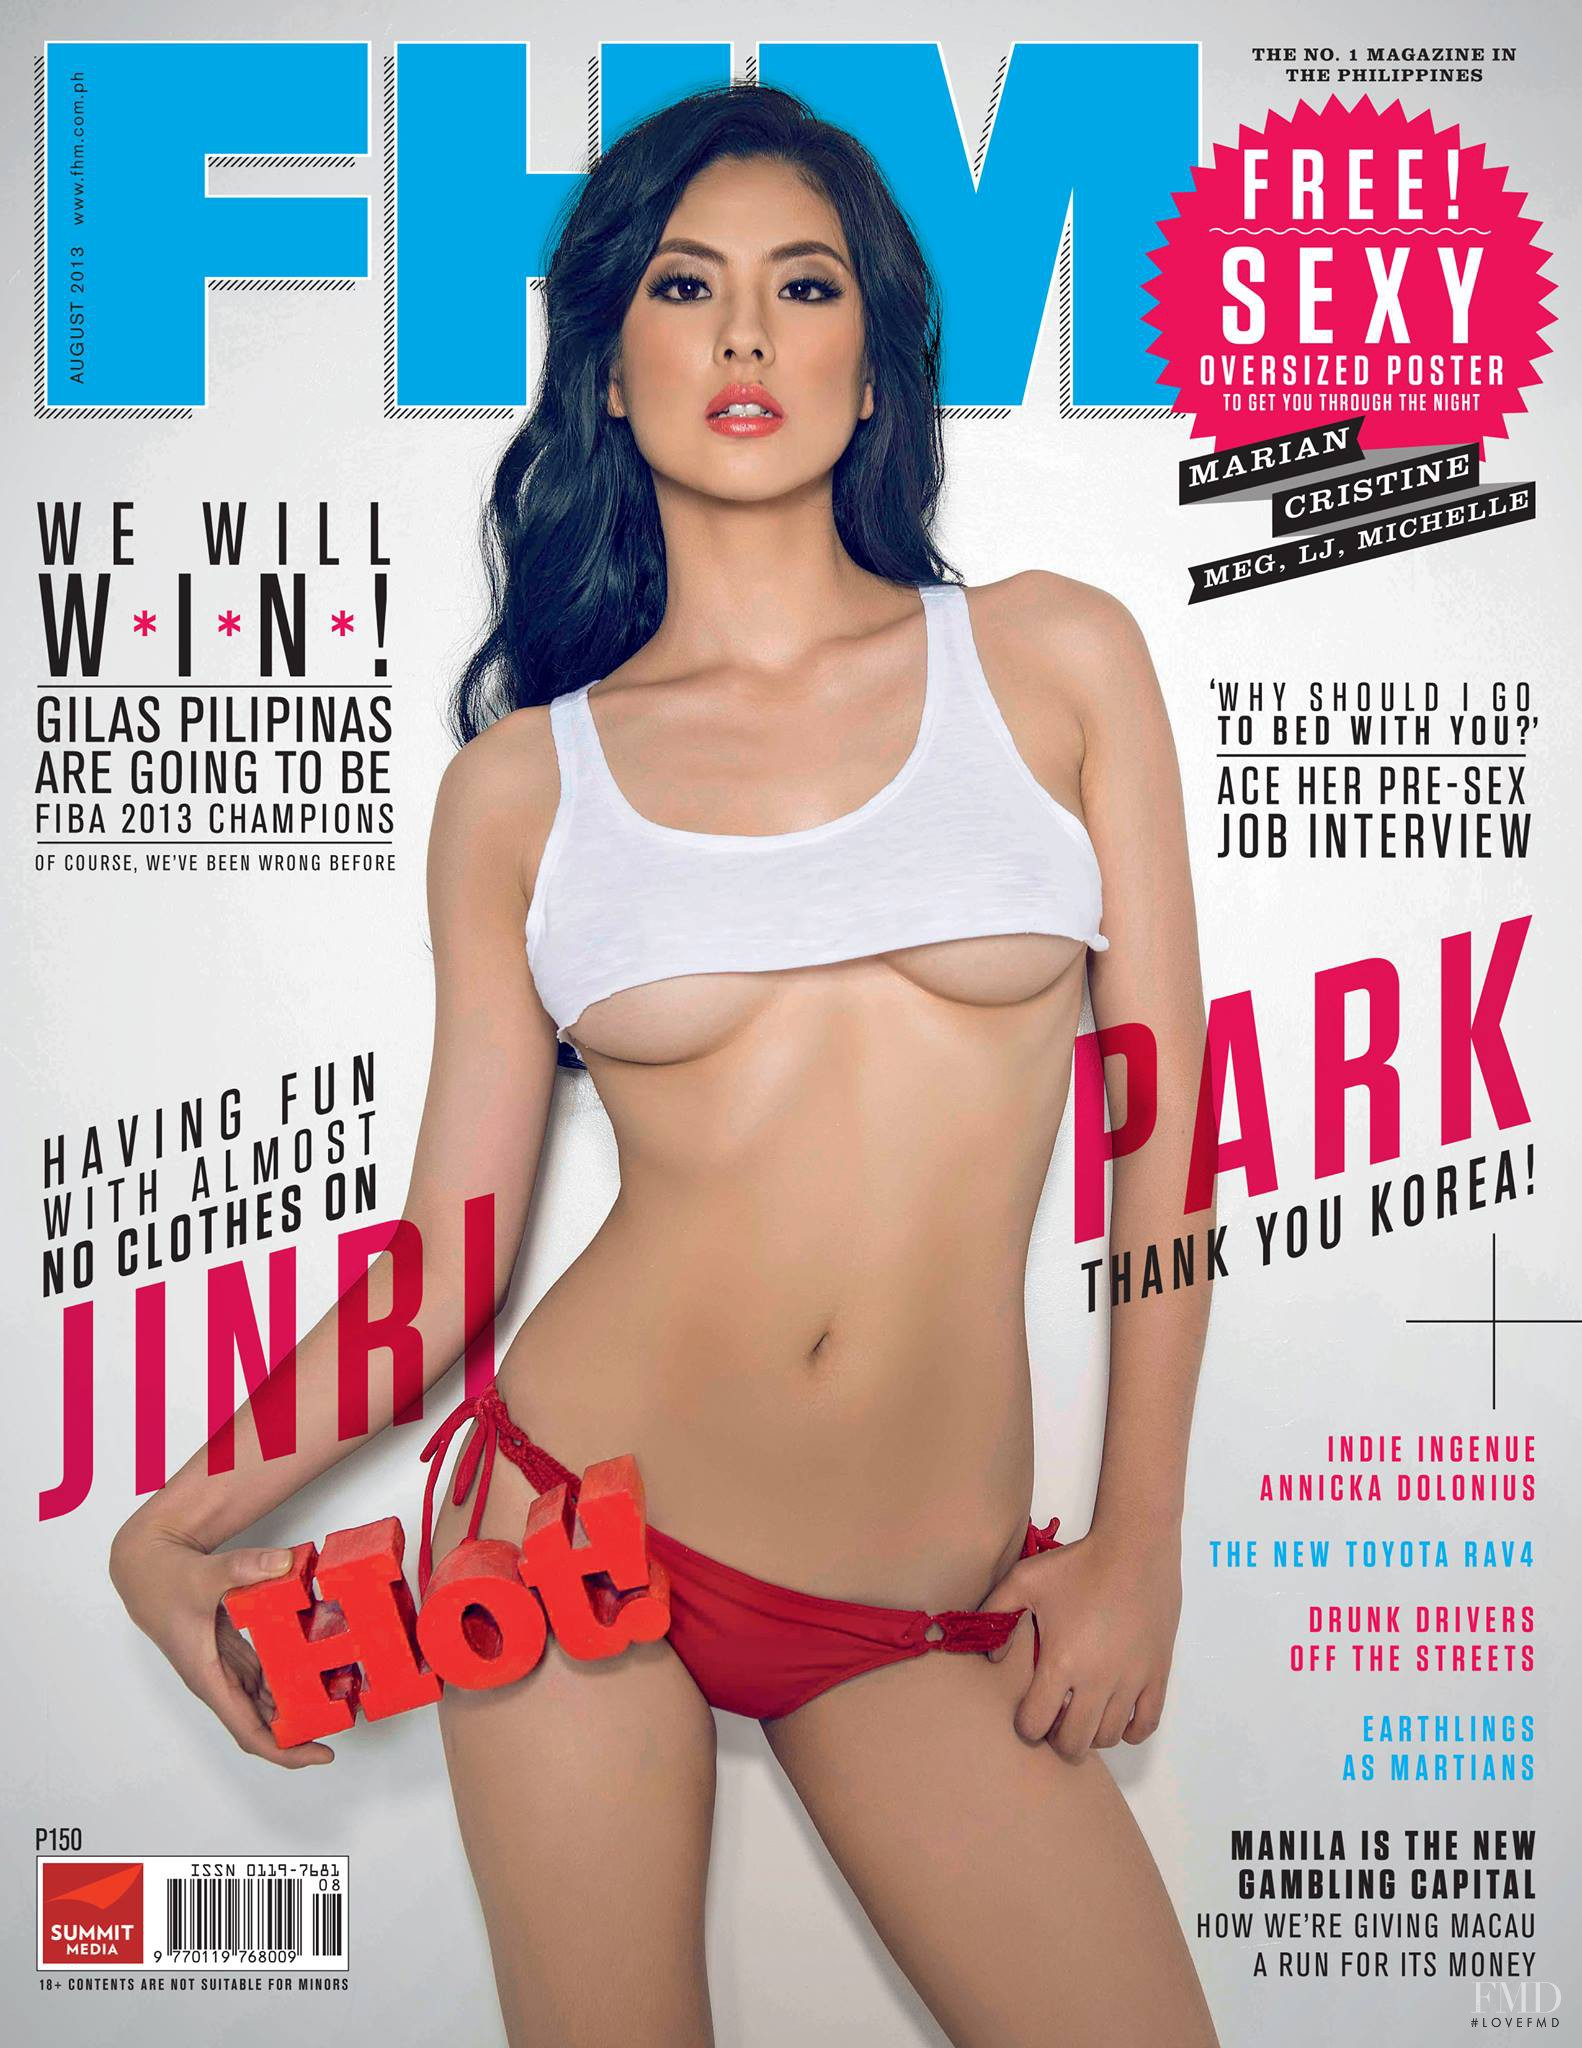 Cover Of FHM Philippines With Jinri Park, August 2013 (ID